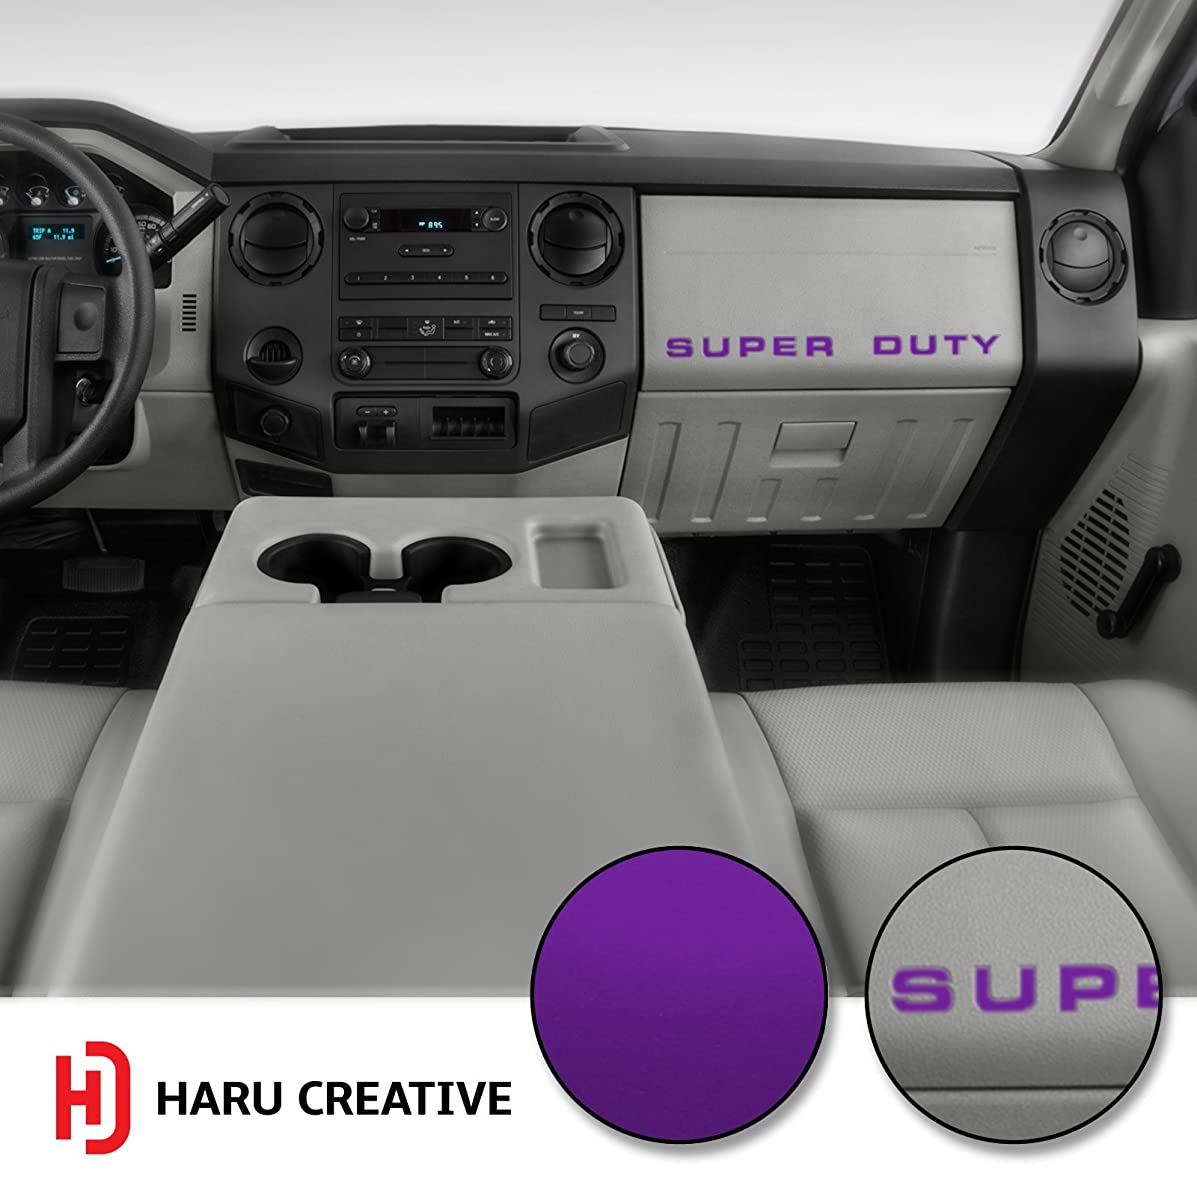 Haru Creative - Dashboard Glove Box Letter Insert Overlay Vinyl Decal Sticker Compatible with and Fits Ford Super Duty F250 F350 F450 (2008-2016) - Metallic Matte Chrome Purple